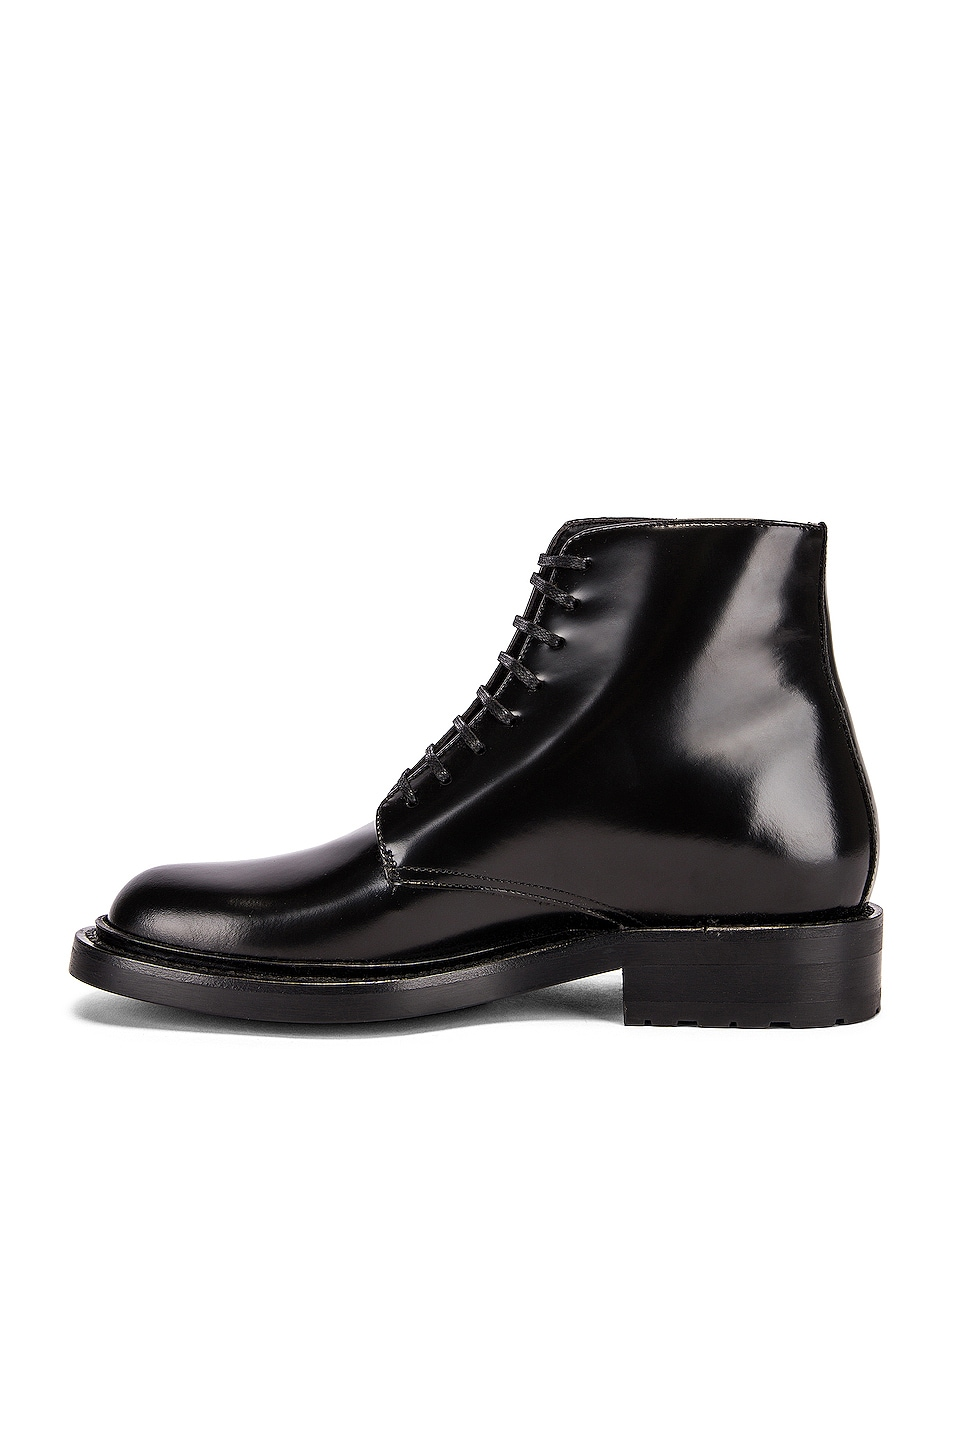 Image 5 of Saint Laurent Army Lace Up Leather Booties in Black